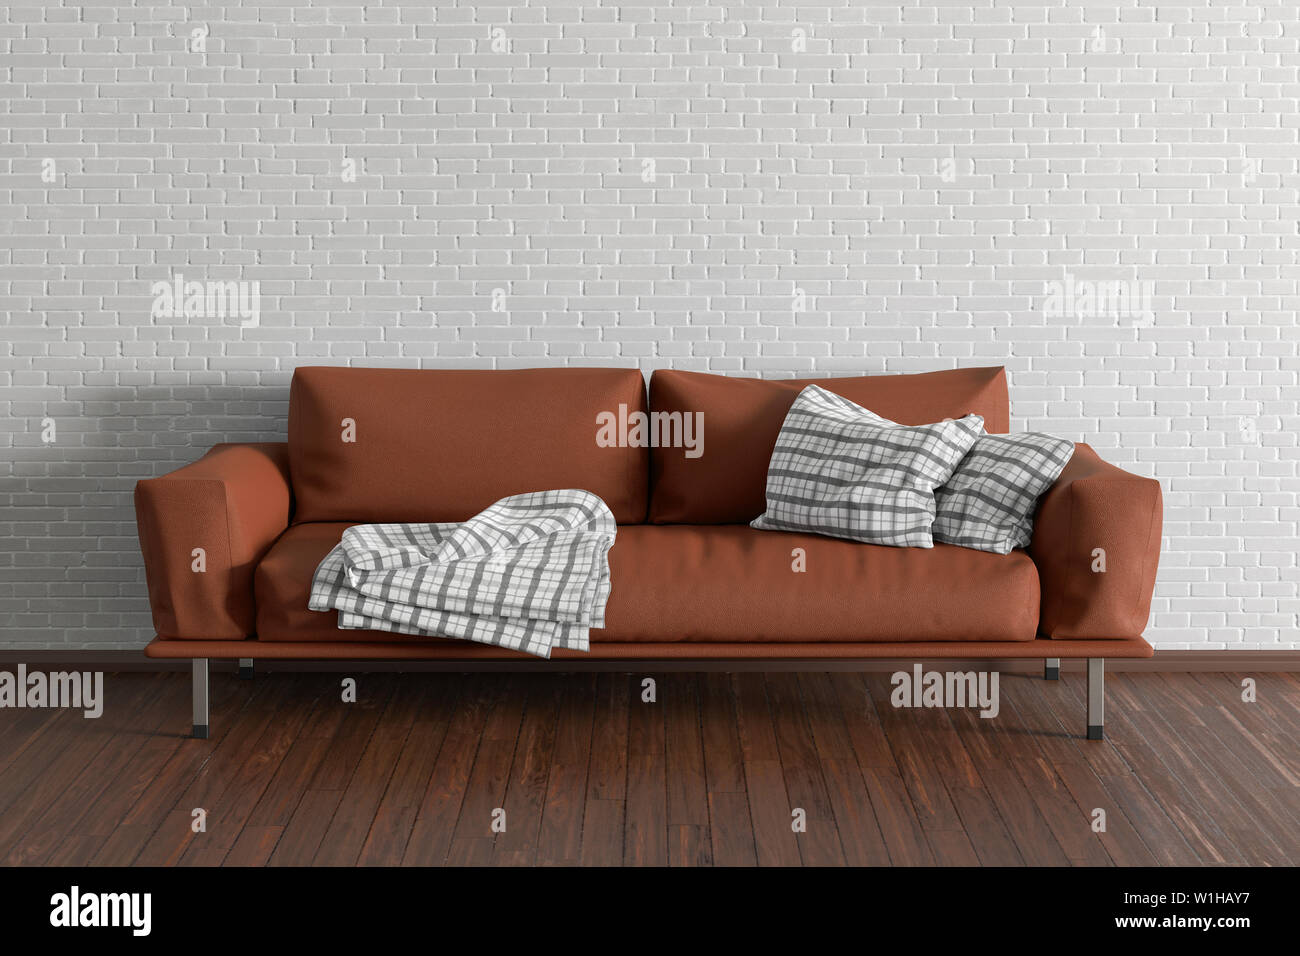 Miraculous Brown Leather Couch In Interior Of Living Room With Wooden Gmtry Best Dining Table And Chair Ideas Images Gmtryco